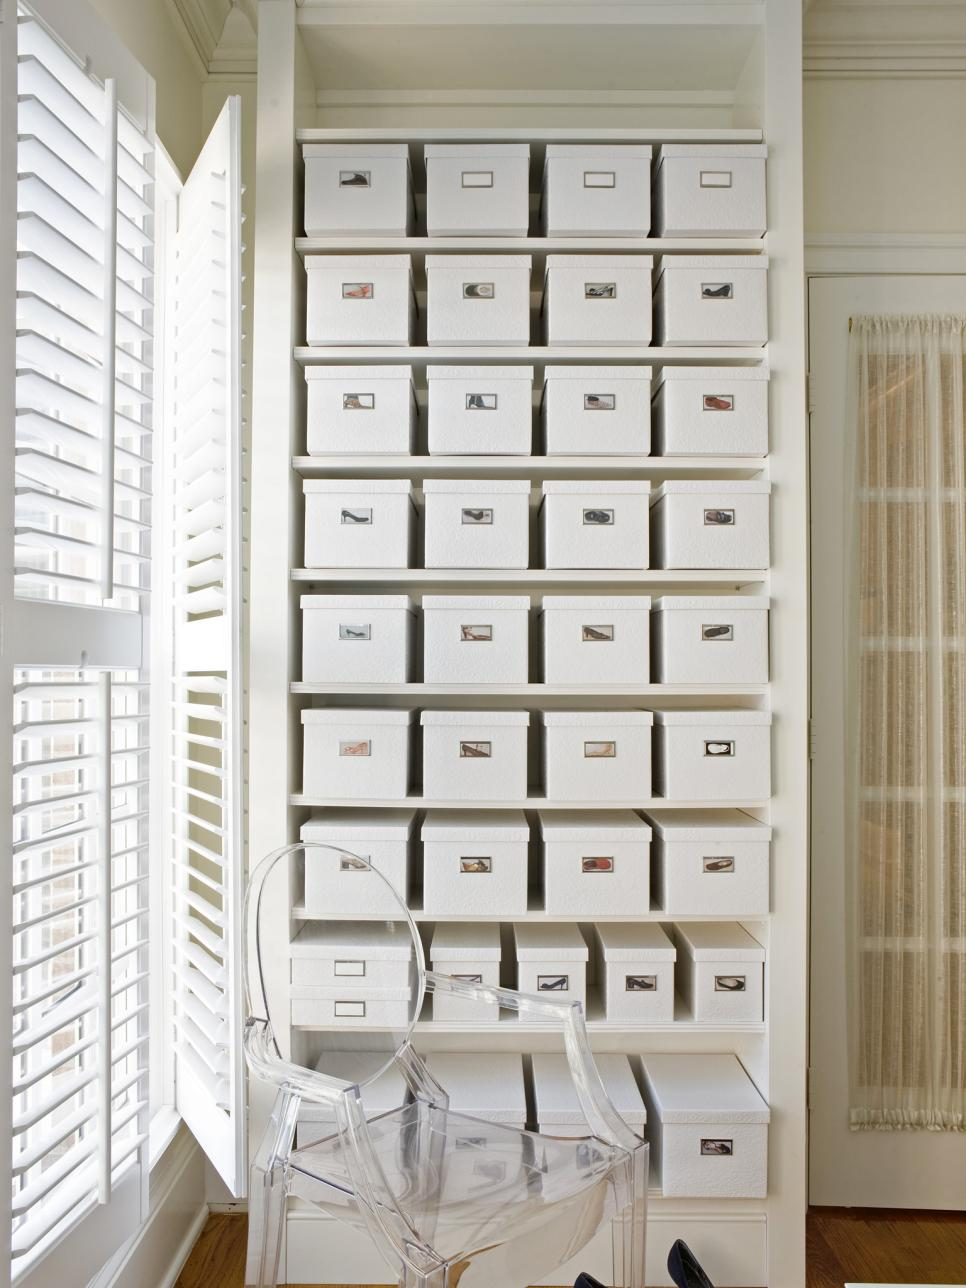 8 clever shoe storage tips hgtv. Black Bedroom Furniture Sets. Home Design Ideas